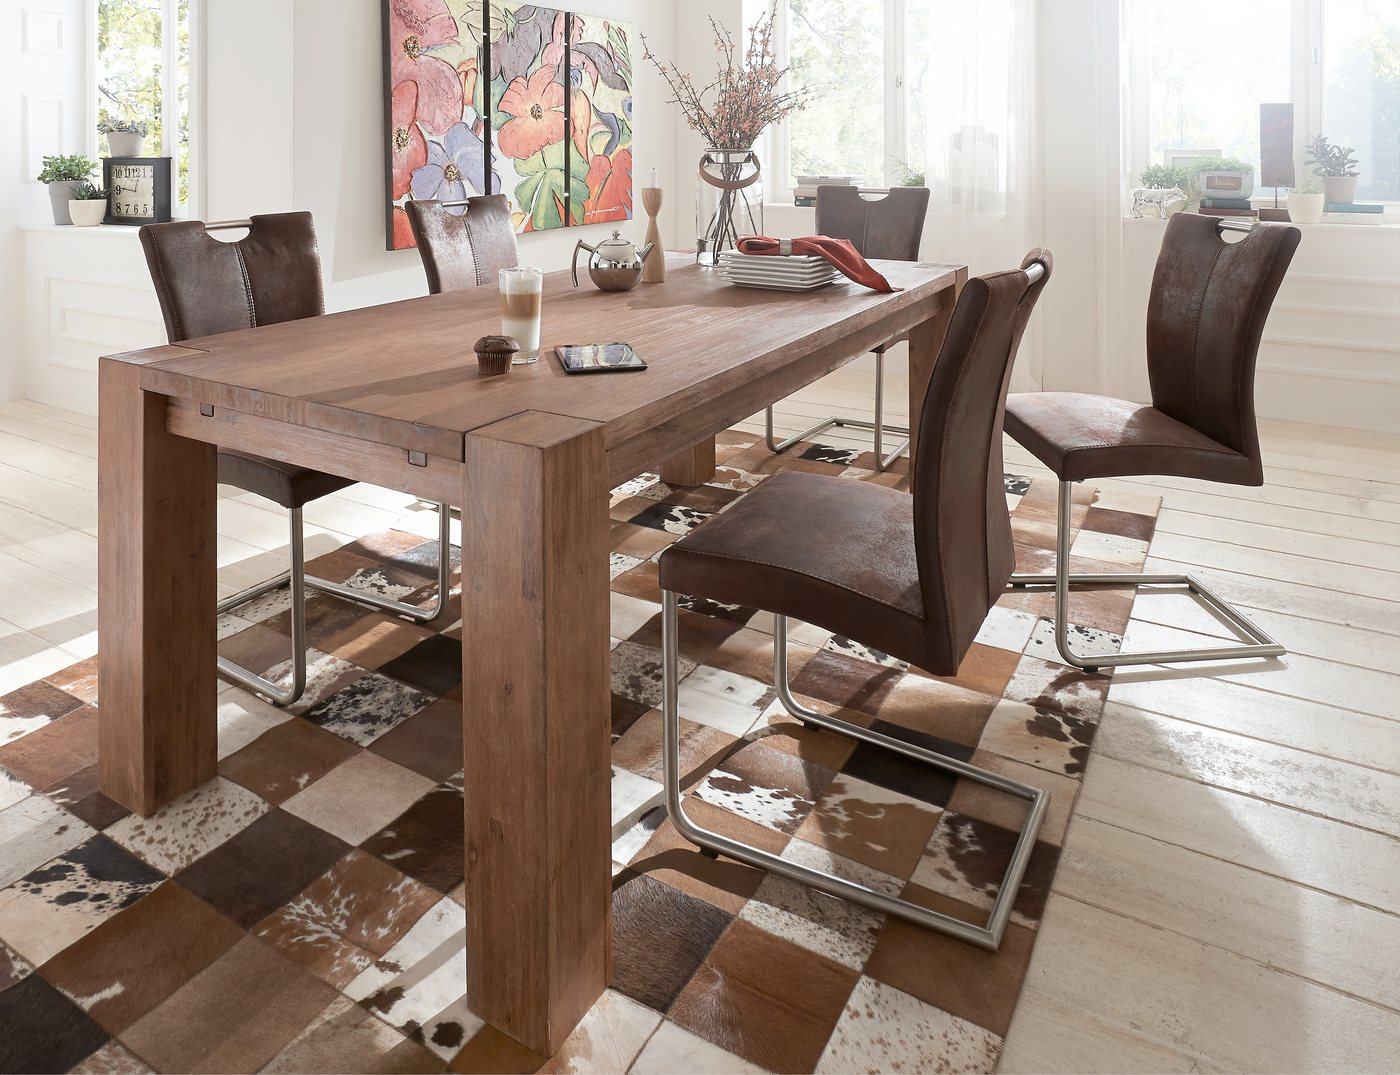 PREMIUM COLLECTION BY HOME AFFAIRE Eettafel